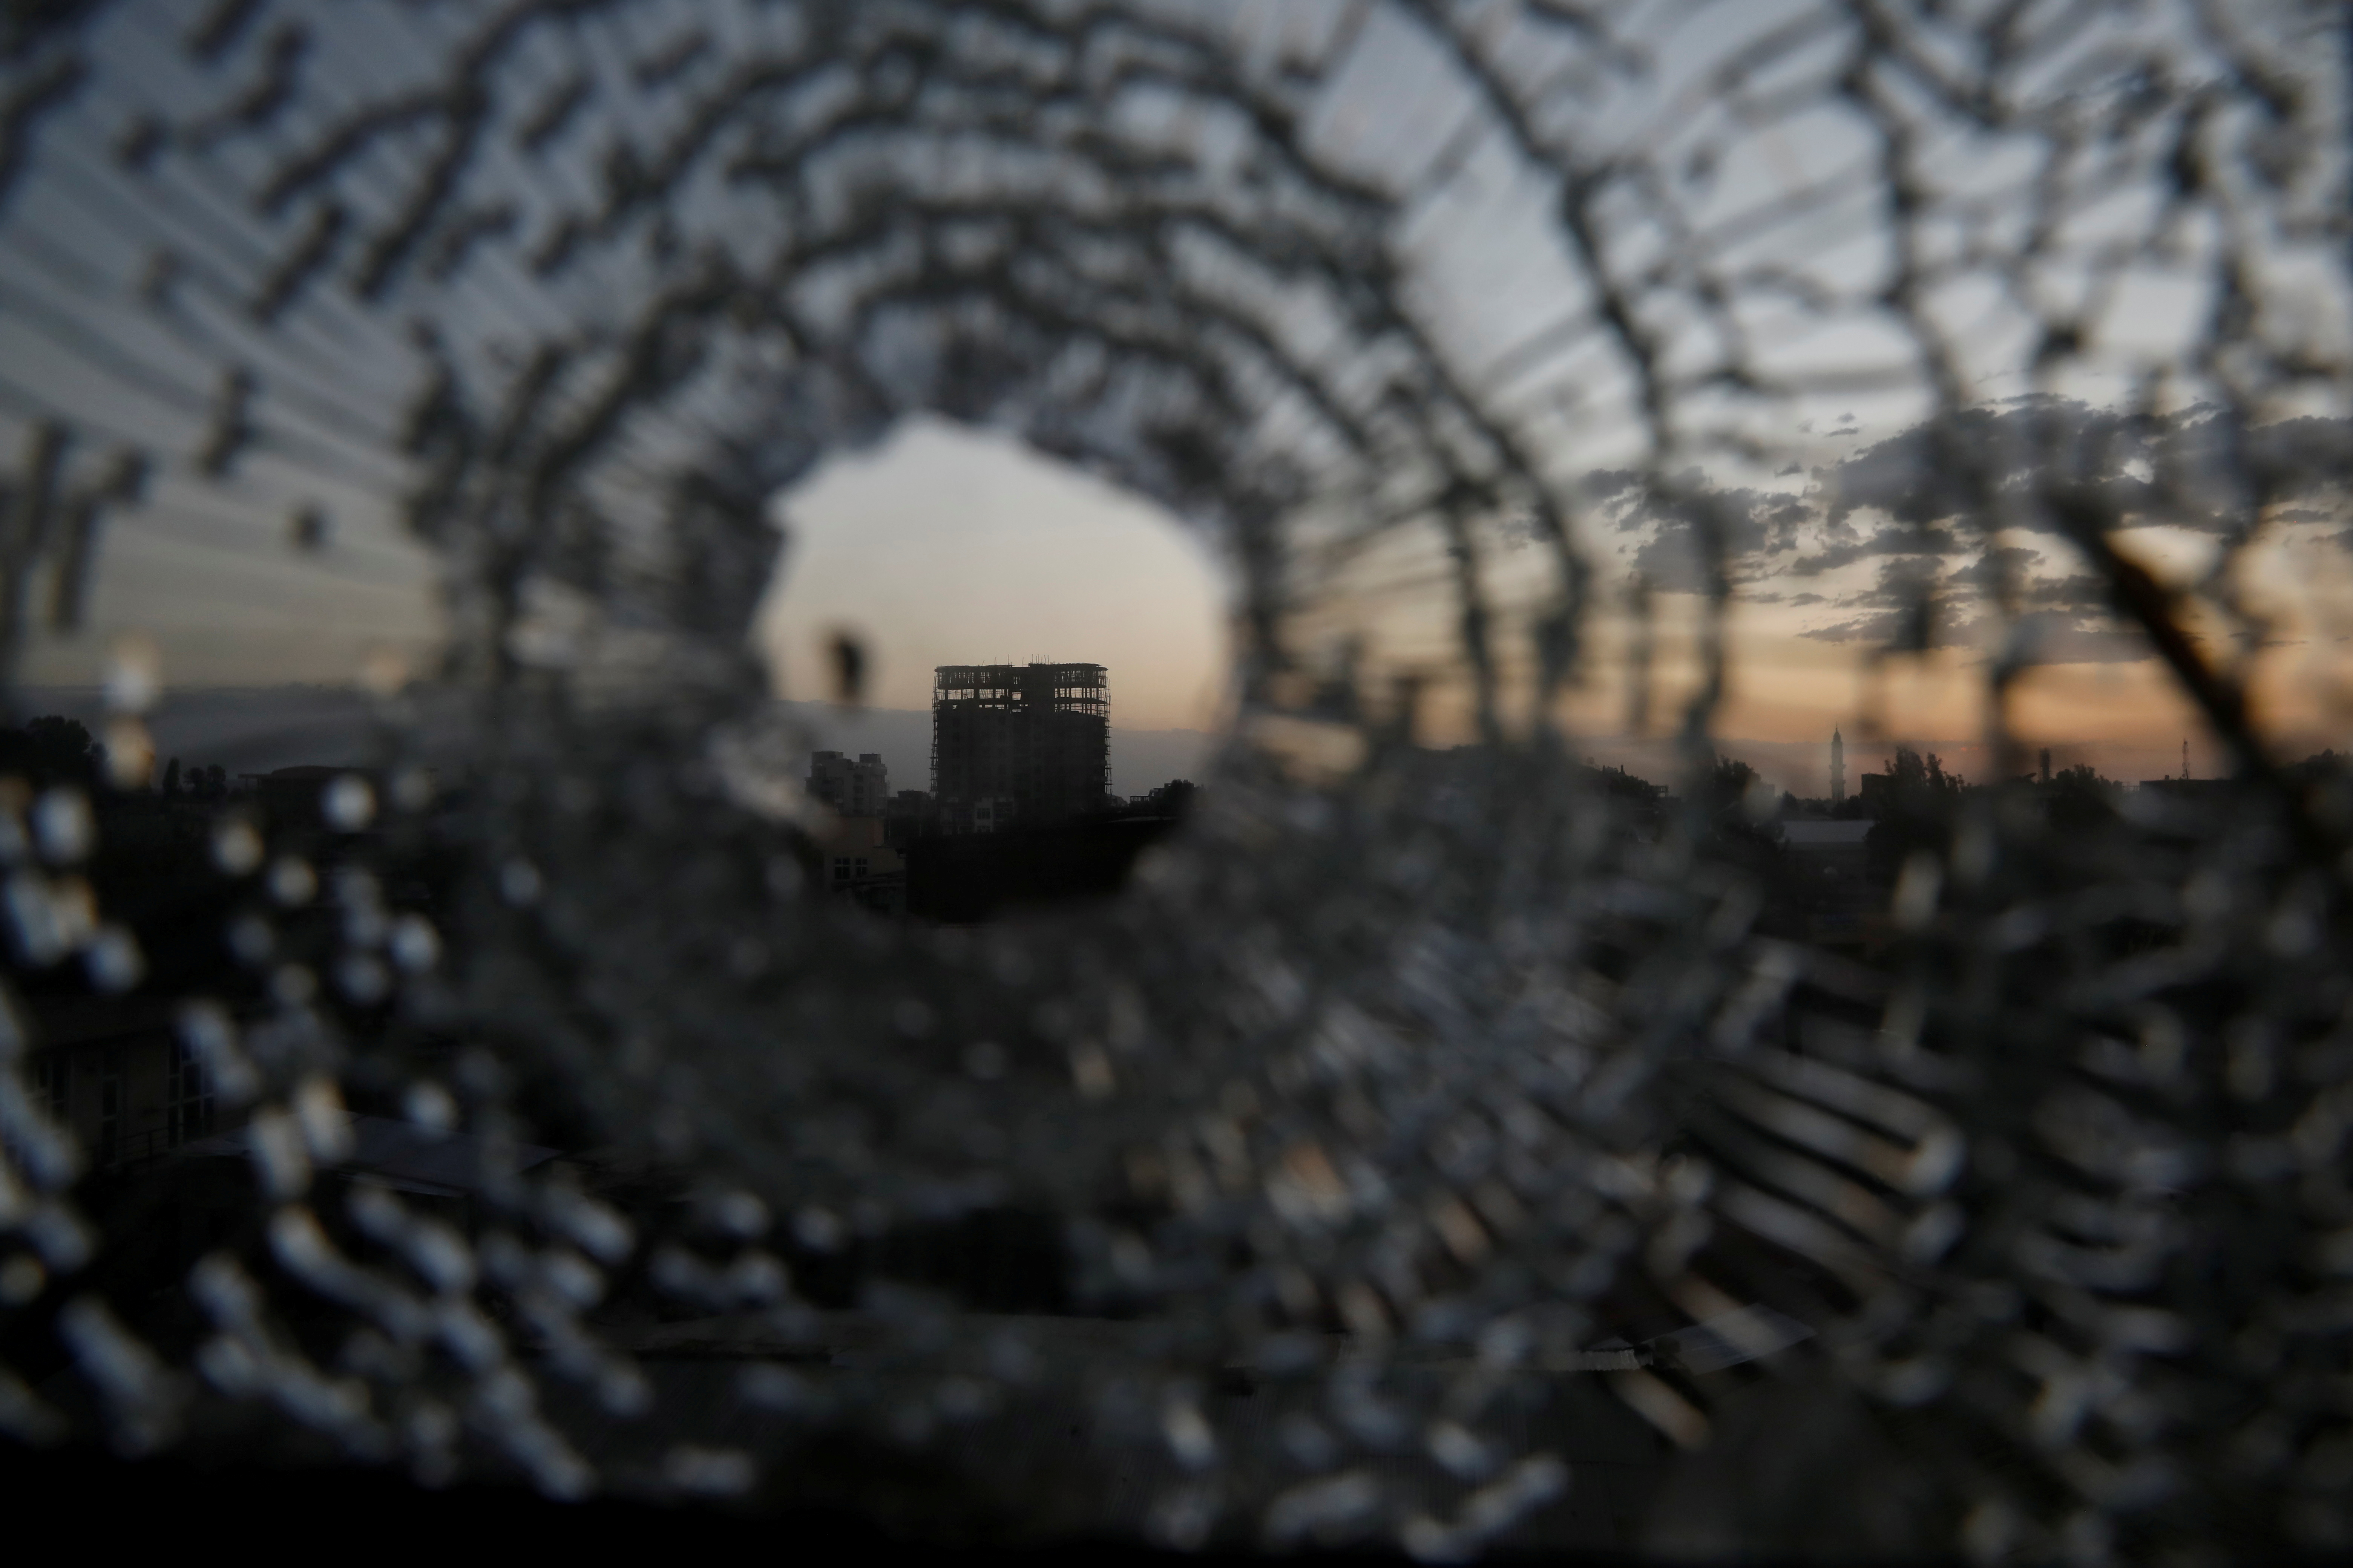 A building is seen through a bullet hole in a window of the Africa Hotel in the town of Shire, Tigray region, Ethiopia, March 16, 2021.  REUTERS/Baz Ratner/File Photo